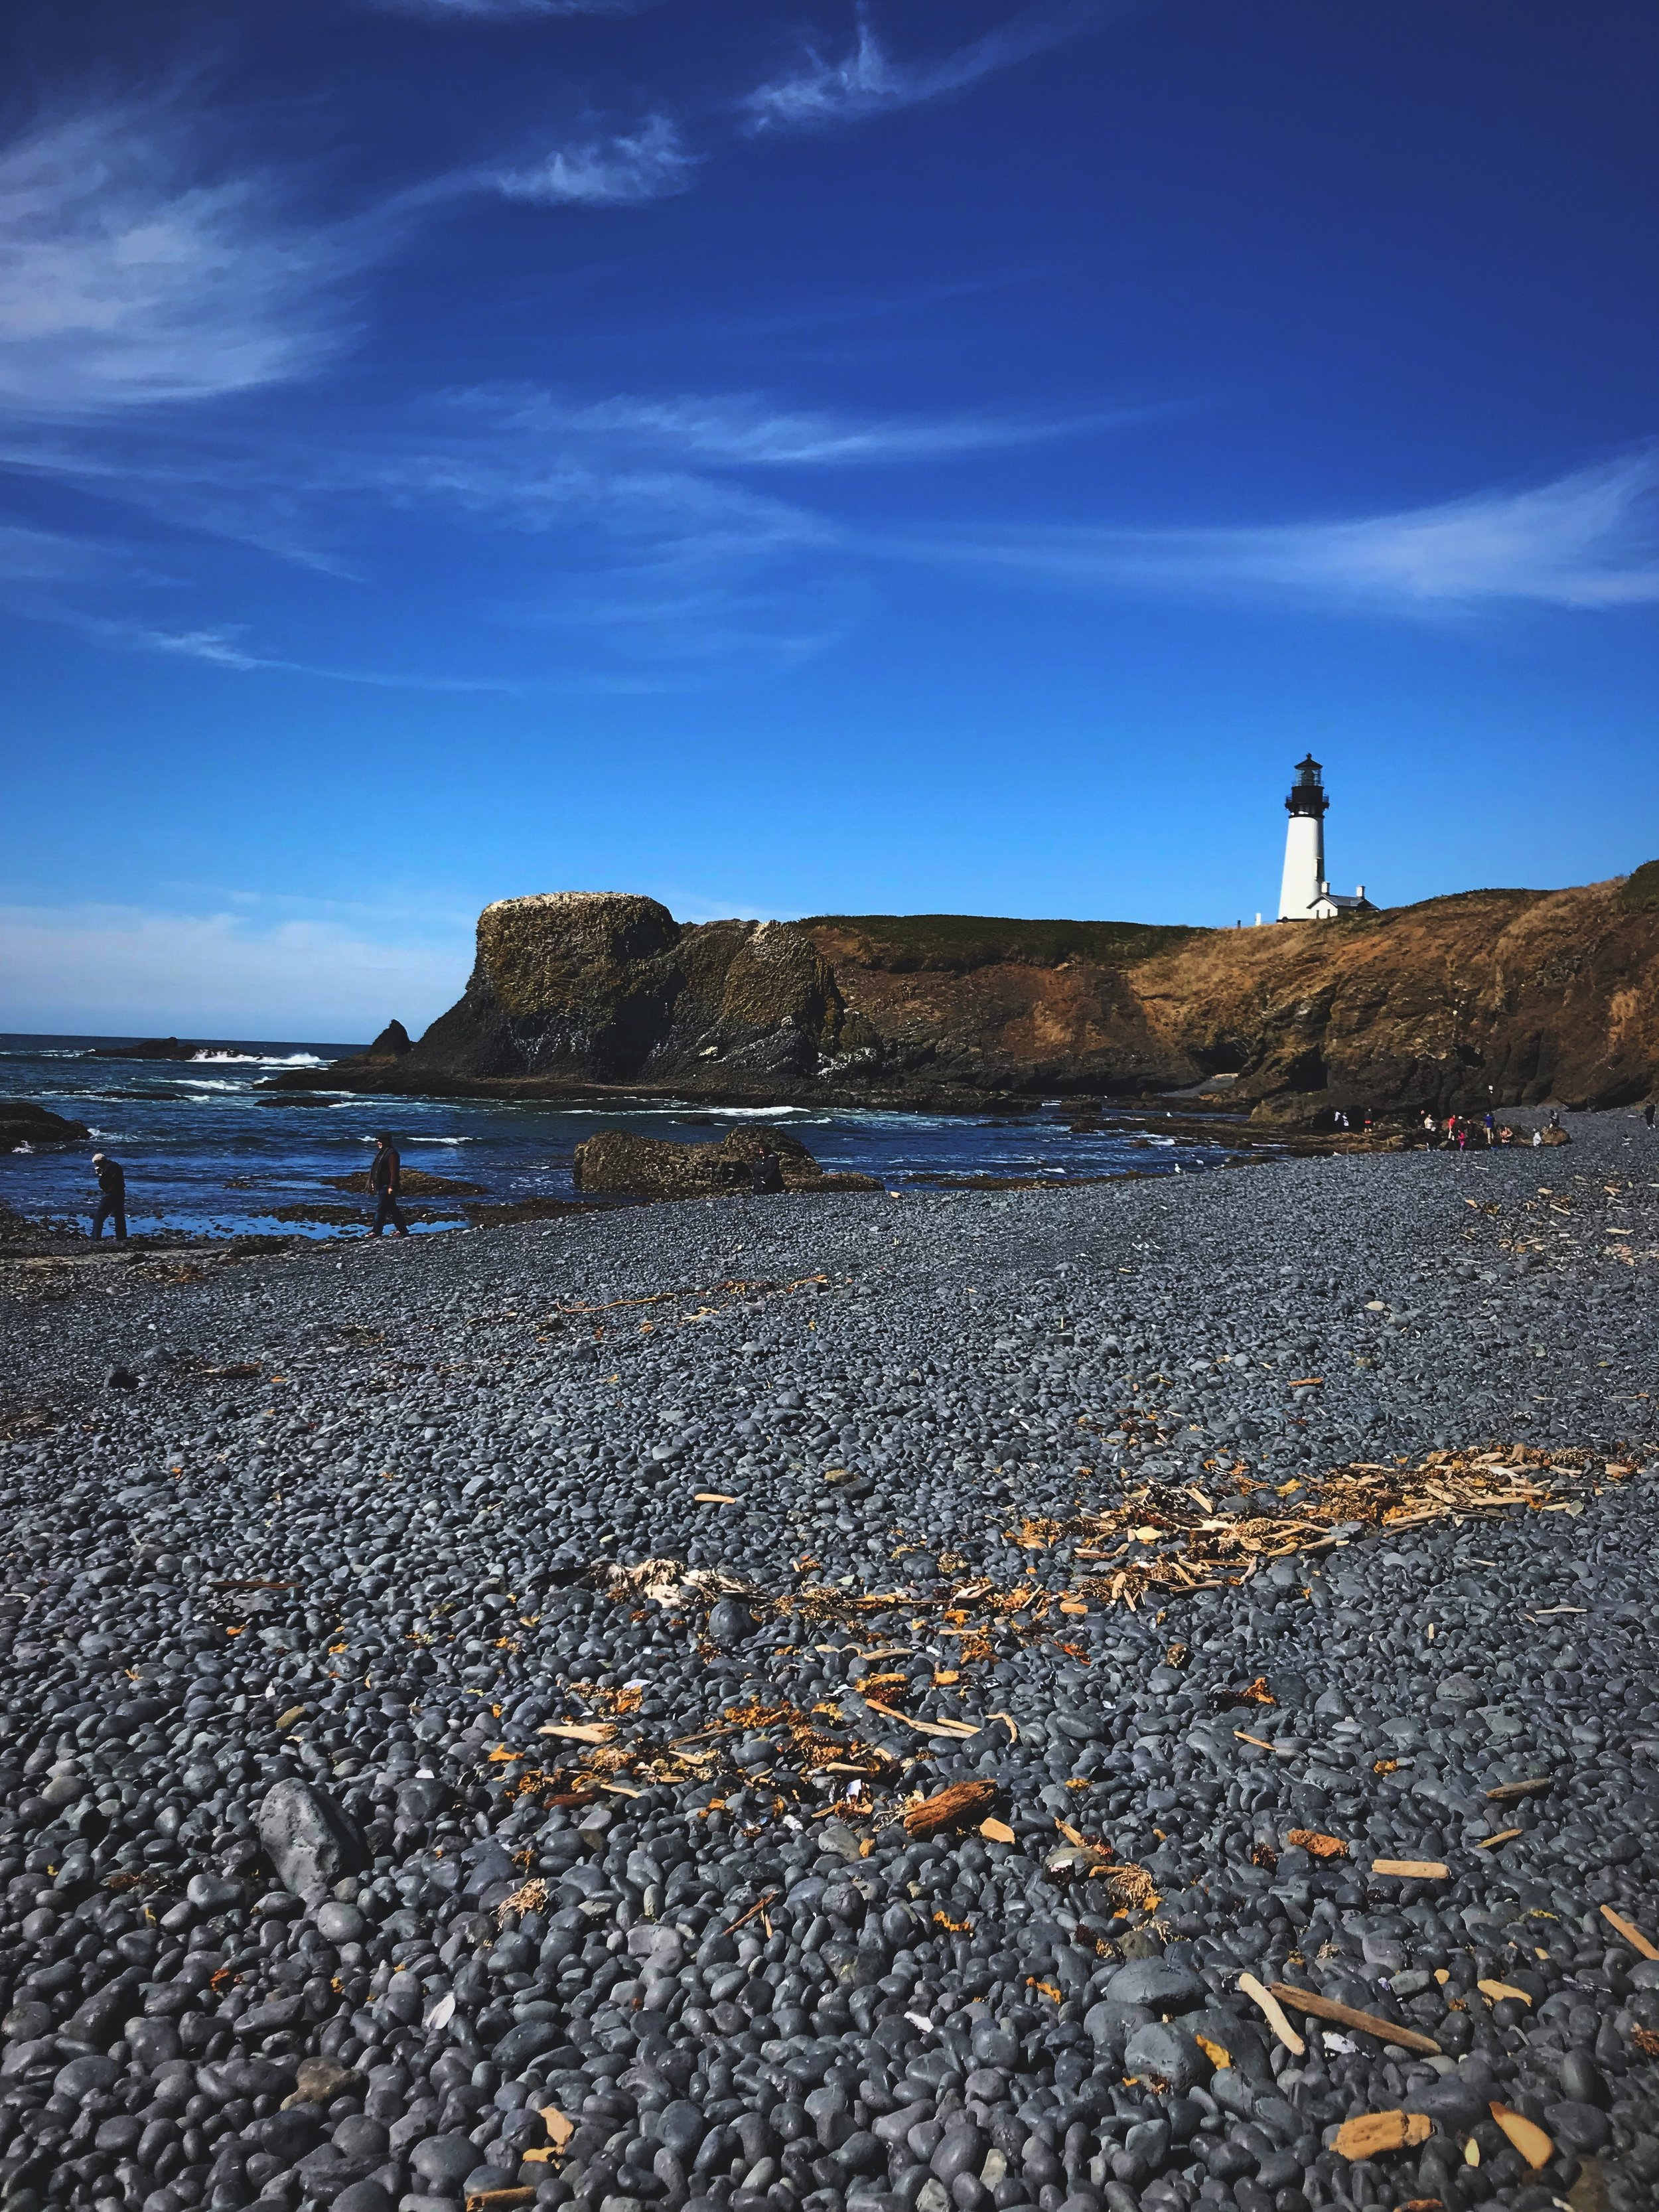 The view of Oregon's tallest lighthouse from the cobble beach.